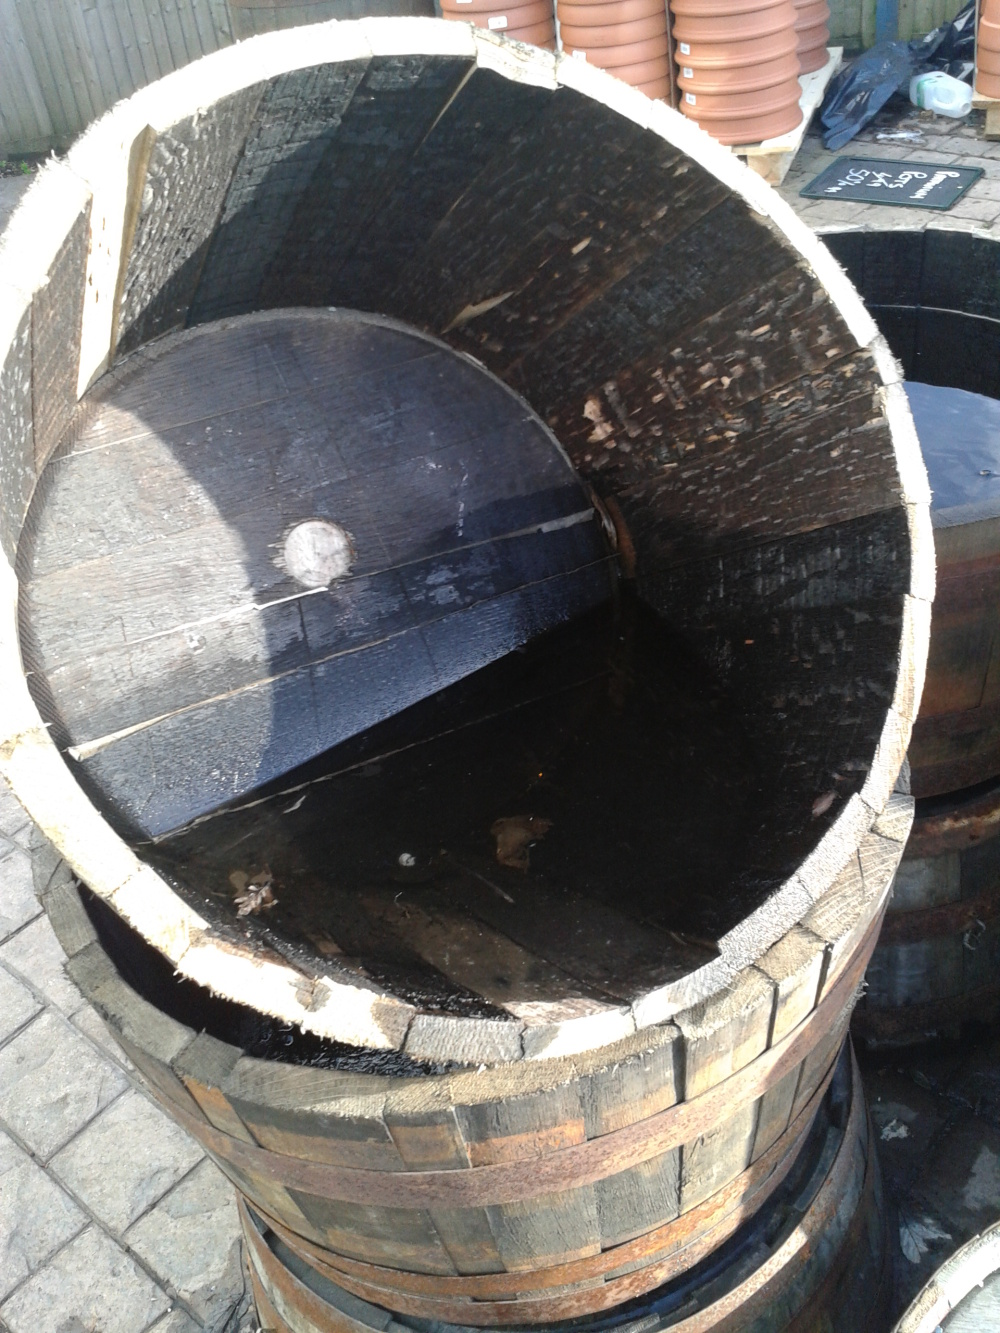 A Barrel of Space and Water